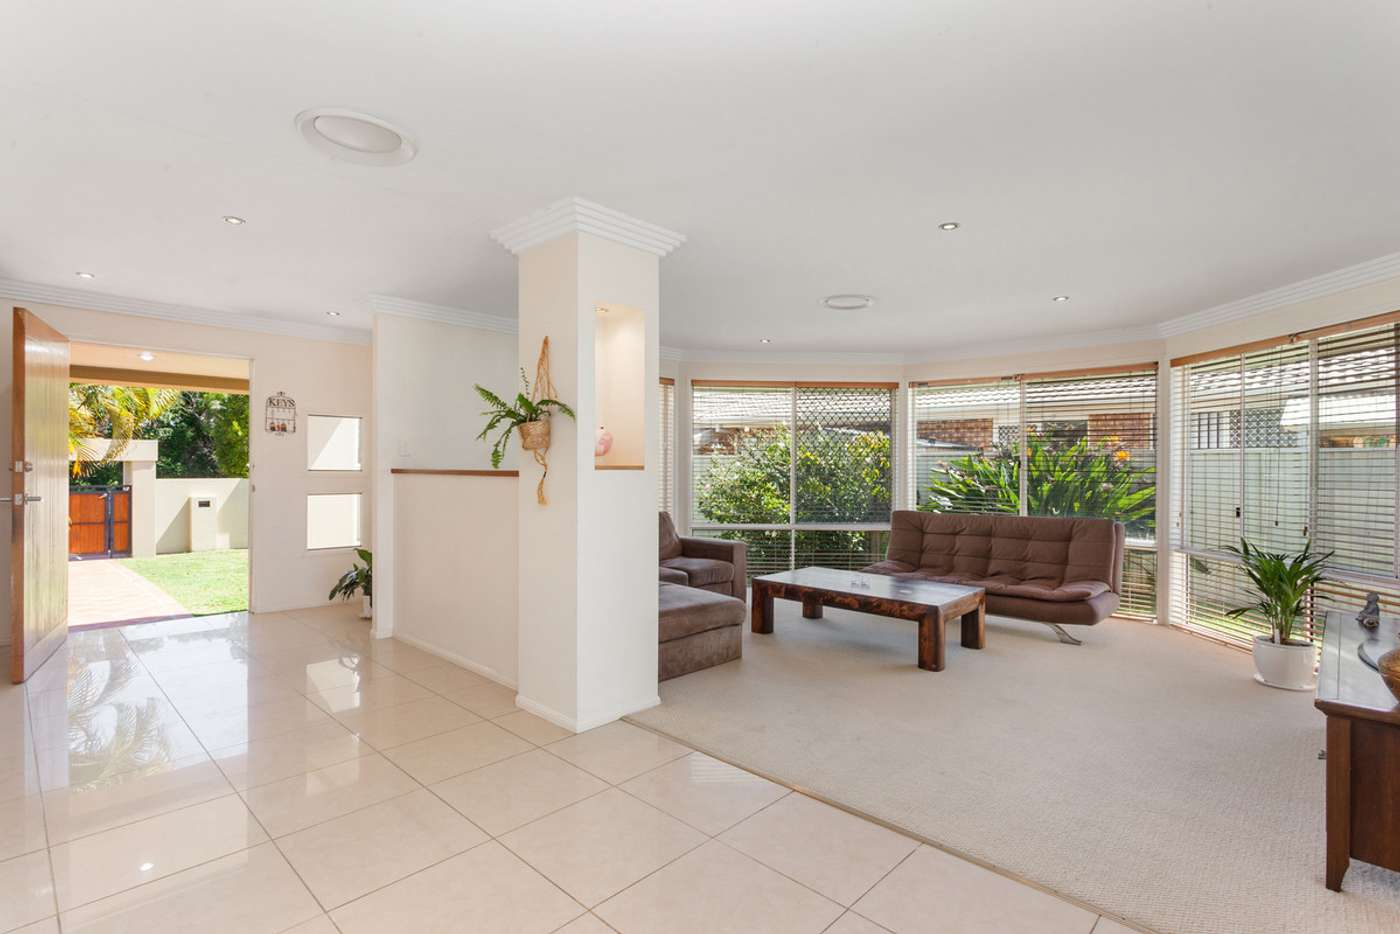 Fifth view of Homely house listing, 49 Cassowary Drive, Burleigh Waters QLD 4220